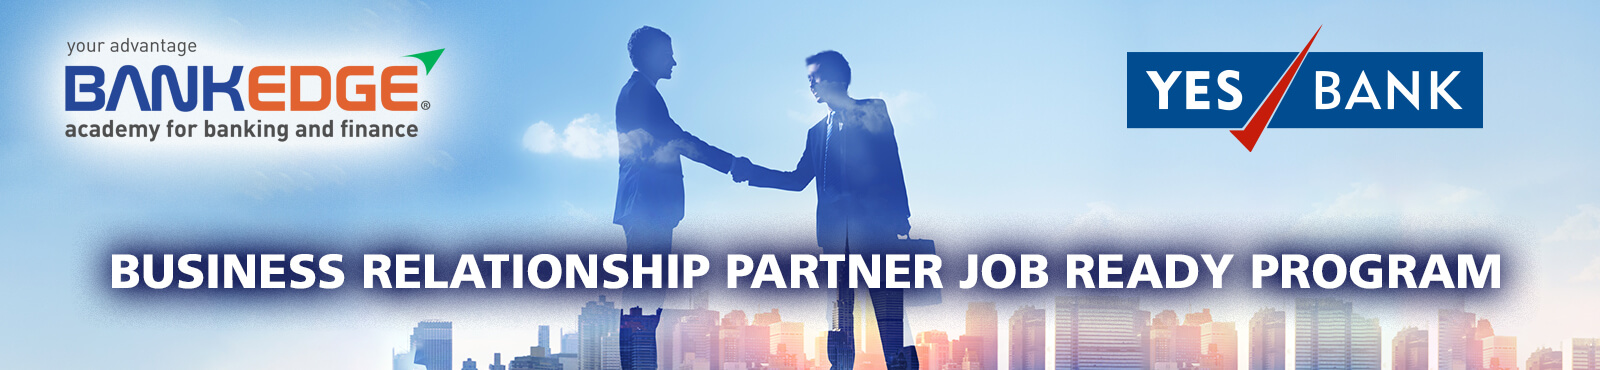 Yes Bank - Business Relationship Partner